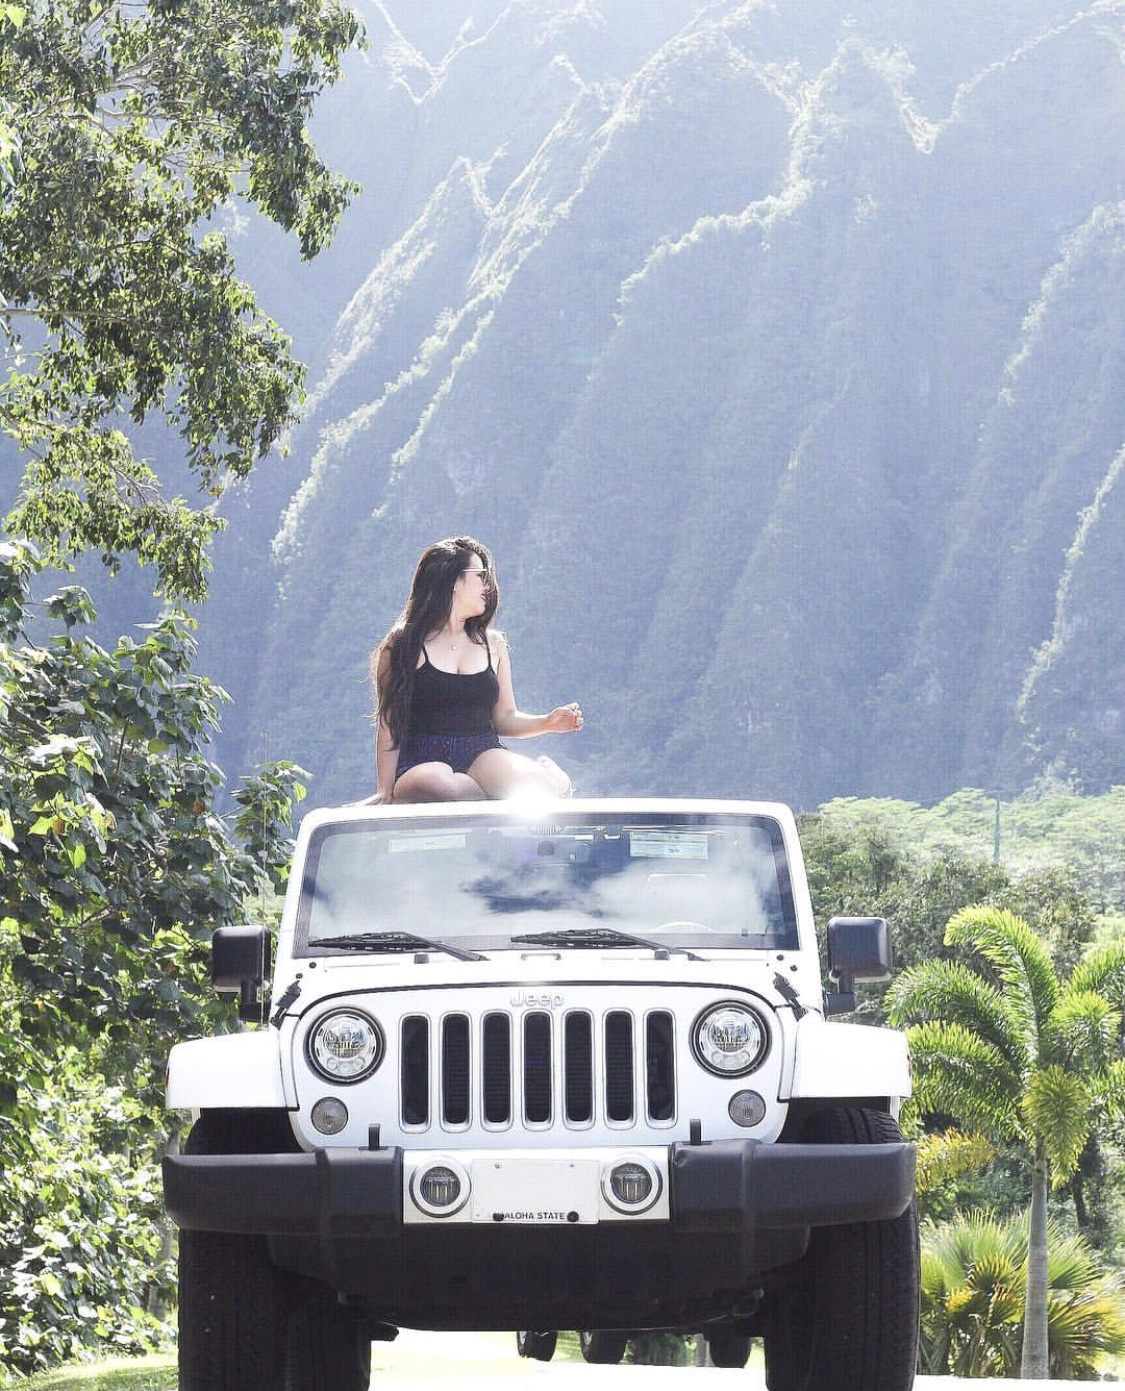 Rented a white jeep   specifically   so I can take this exact photo--I didn't just randomly get this!